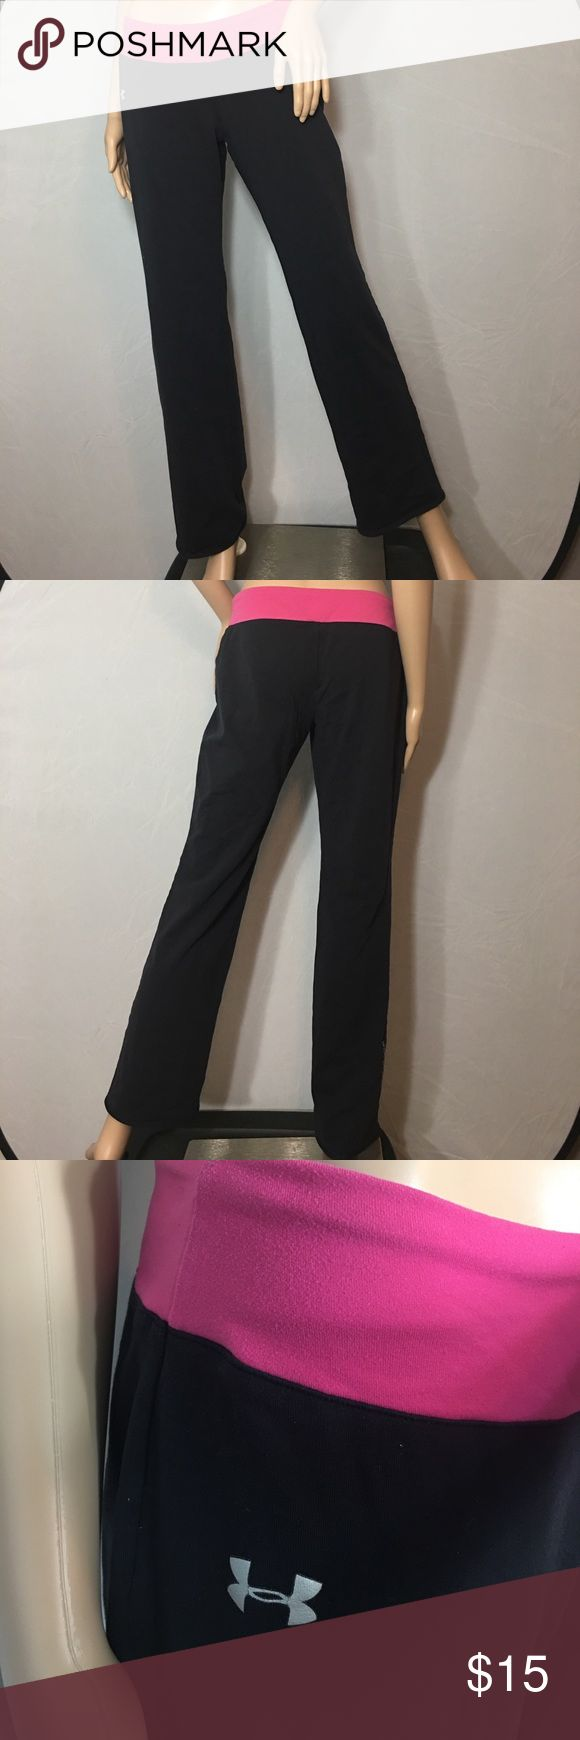 Under Armor Compression Yoga Pant •Sz M Compression pants by Under Armor • These are a little baggy on the mannequin because she's super tiny Under Armour Pants Boot Cut & Flare